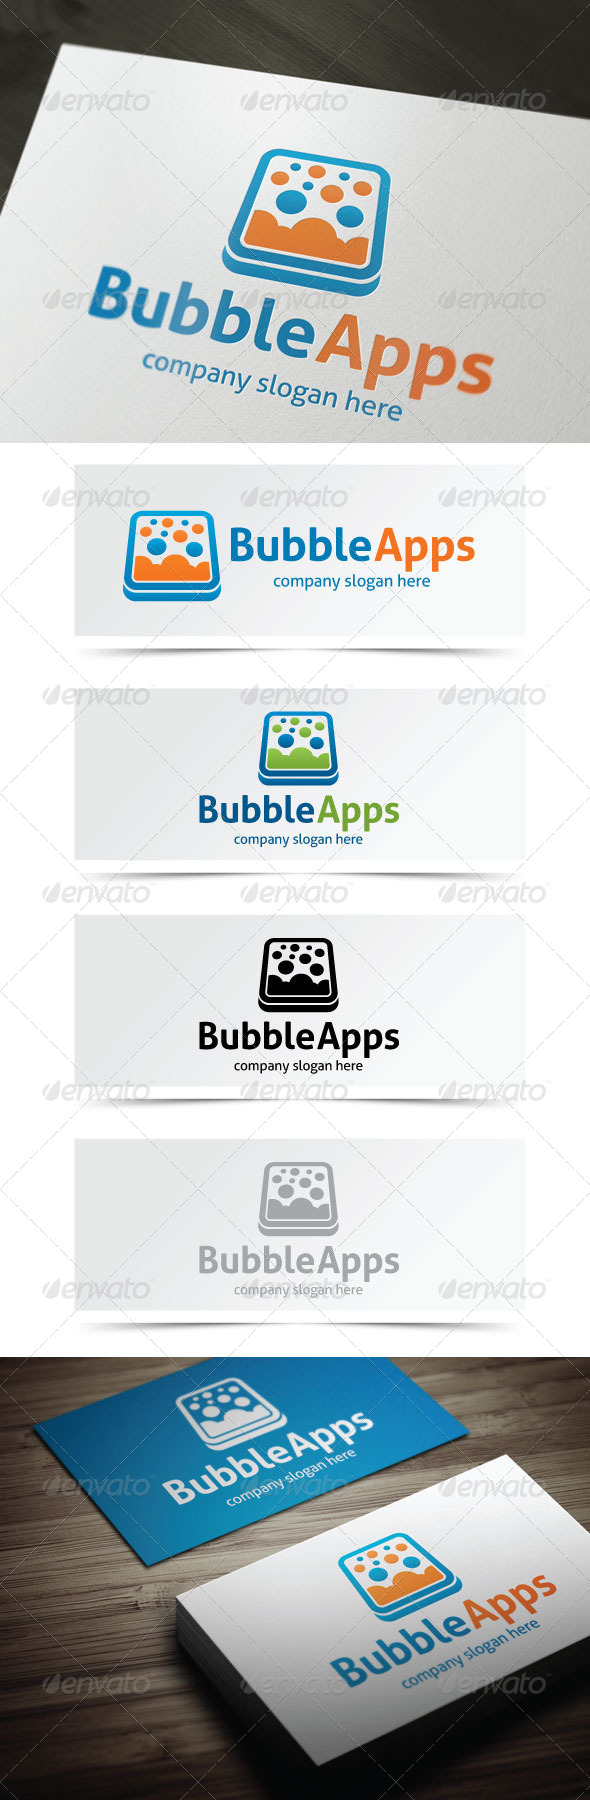 GraphicRiver Bubble Apps 5351372